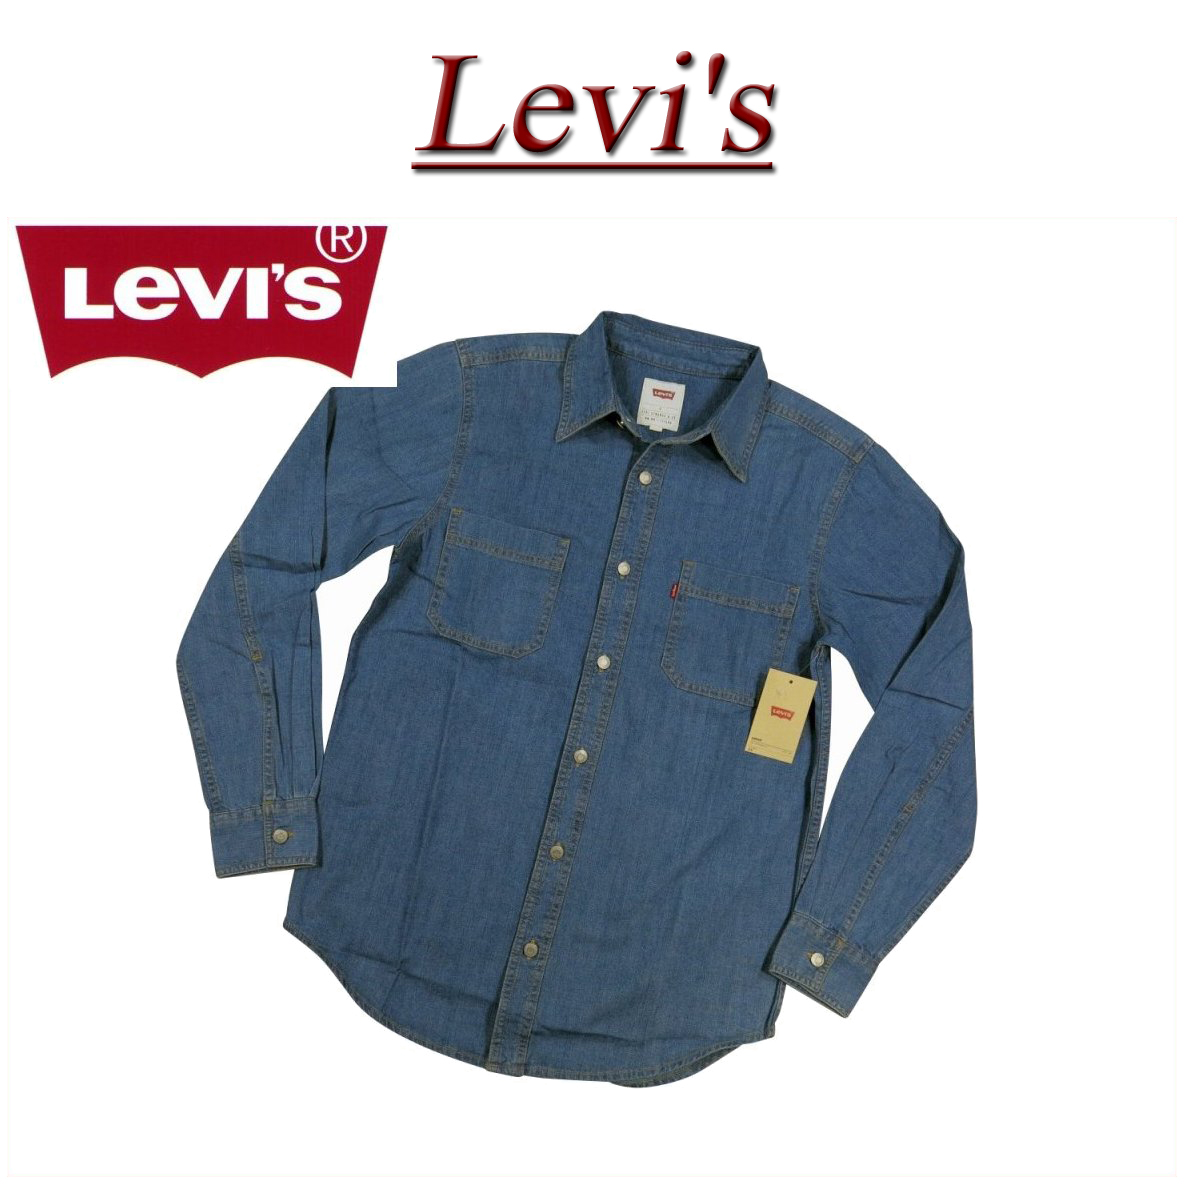 fcad7cbd16 af081 brand new Levis denim shirt mens US line Levi s CLASSIC DENIM  WORKSHIRT AUTHENTIC STONEWASH Long Sleeve Denim workshirt Levi s